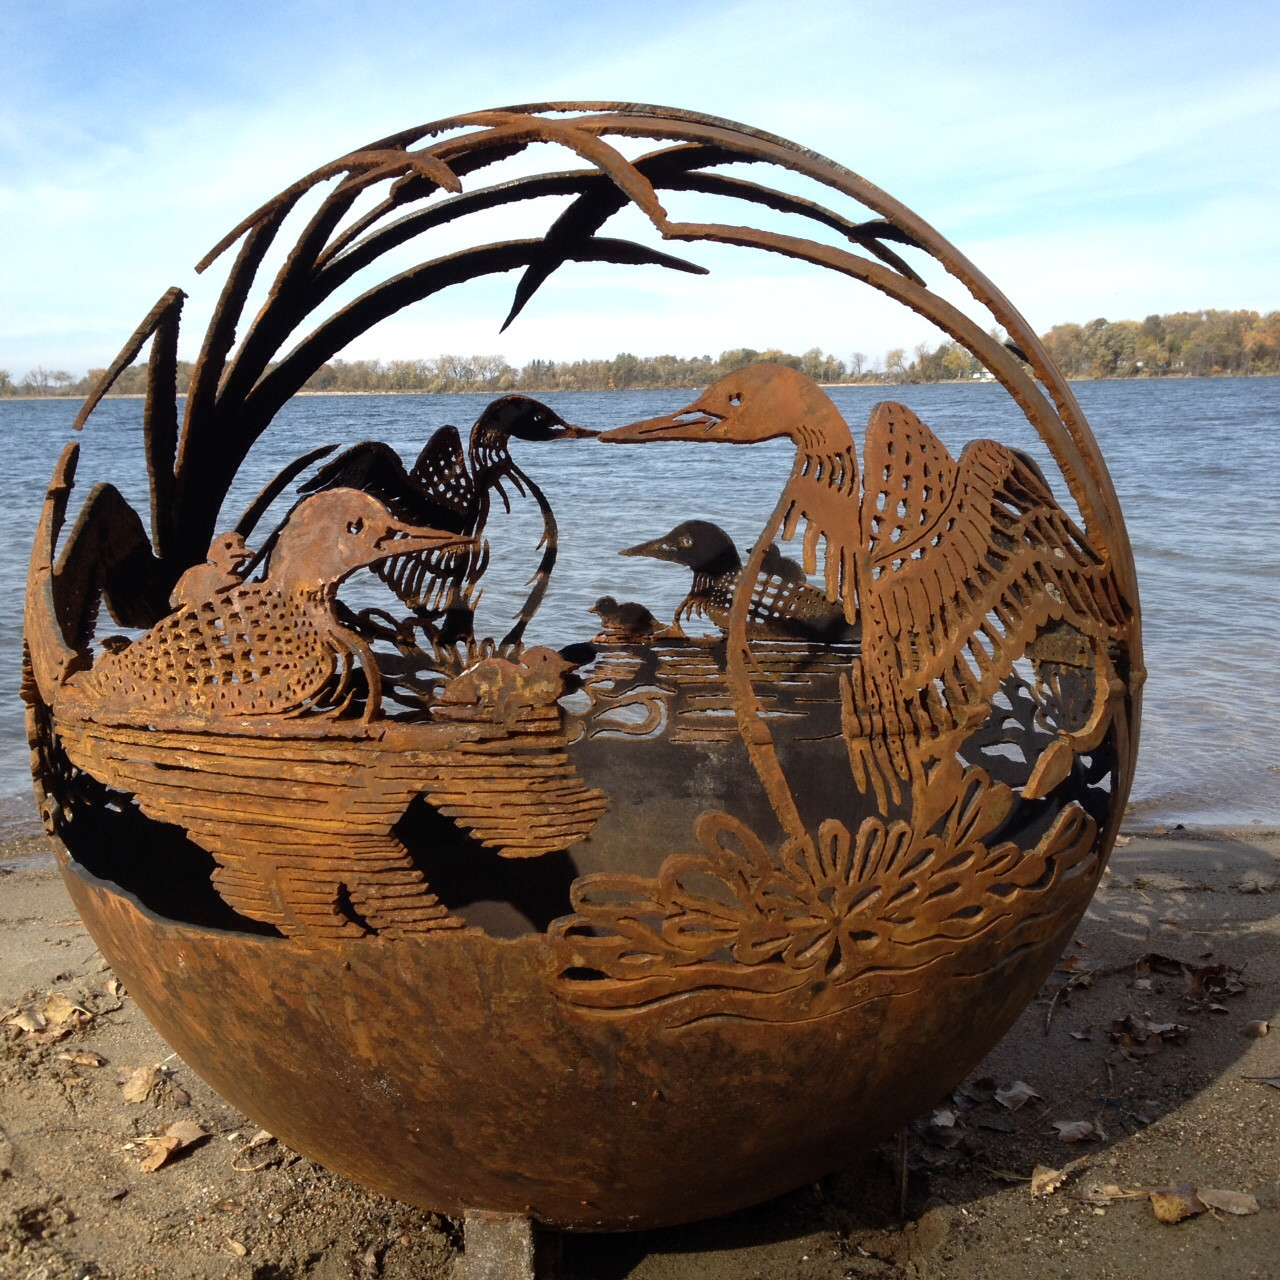 Fireball Fire Pits - Loon - 37.5 inch Fire Globe - Fireball Fire Pits - Loon - 37.5 Inch Fire Globe - 3715DL - The Fire